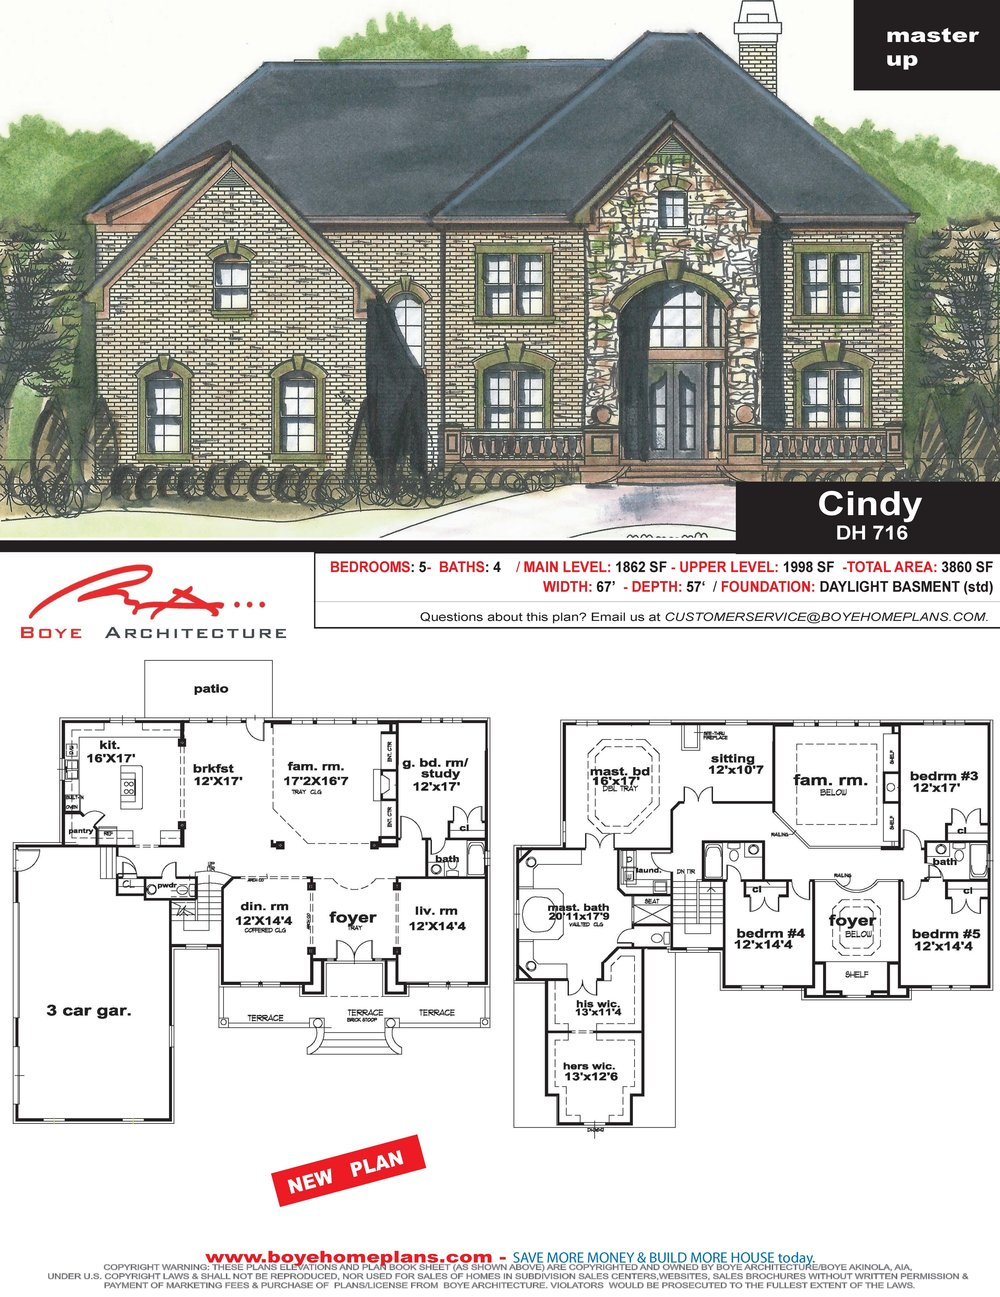 CINDY PLAN PAGE-DH 716-030517.jpg